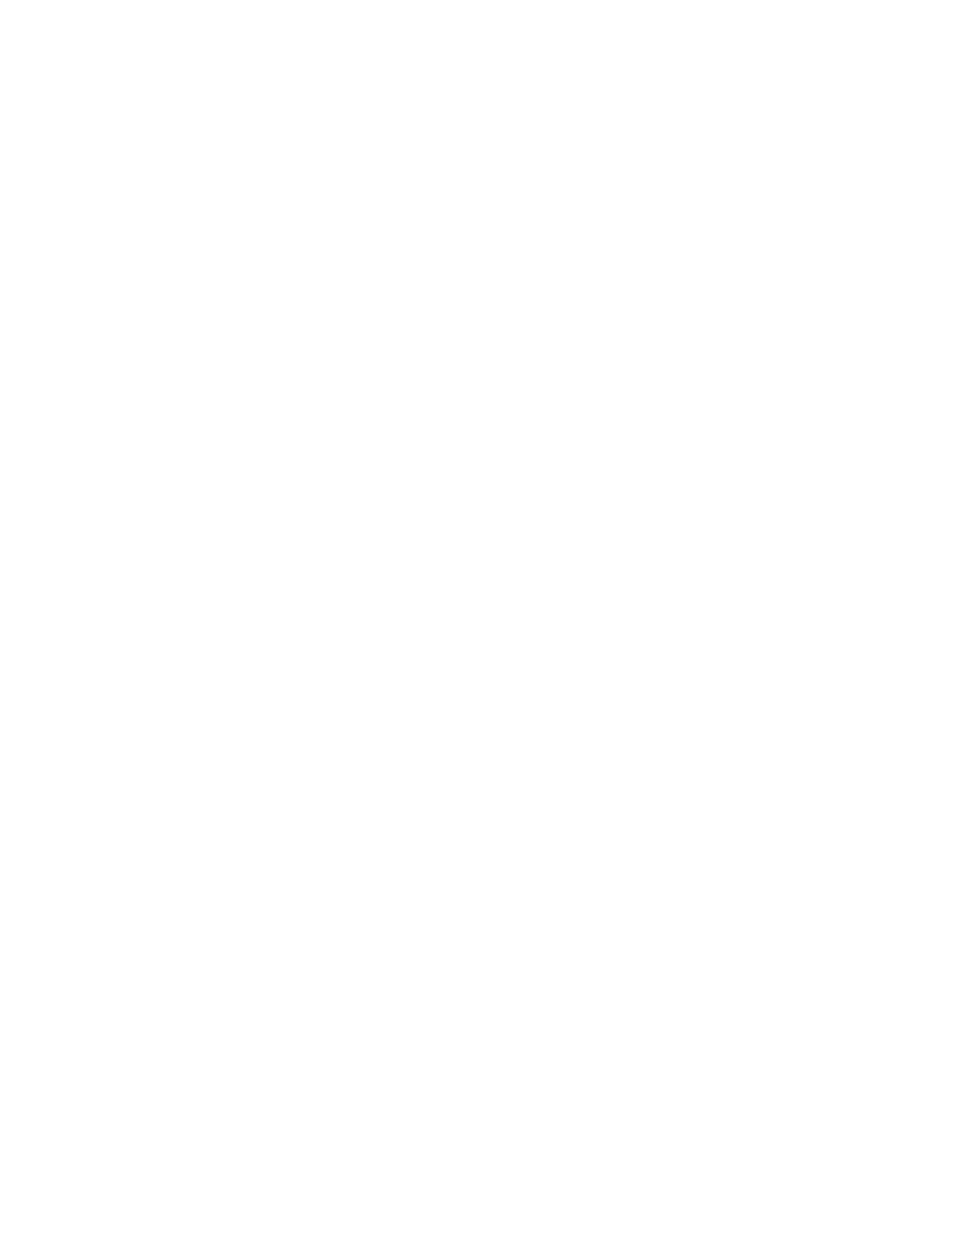 LSI SAS3041E User Manual | Page 30 / 46 | Also for